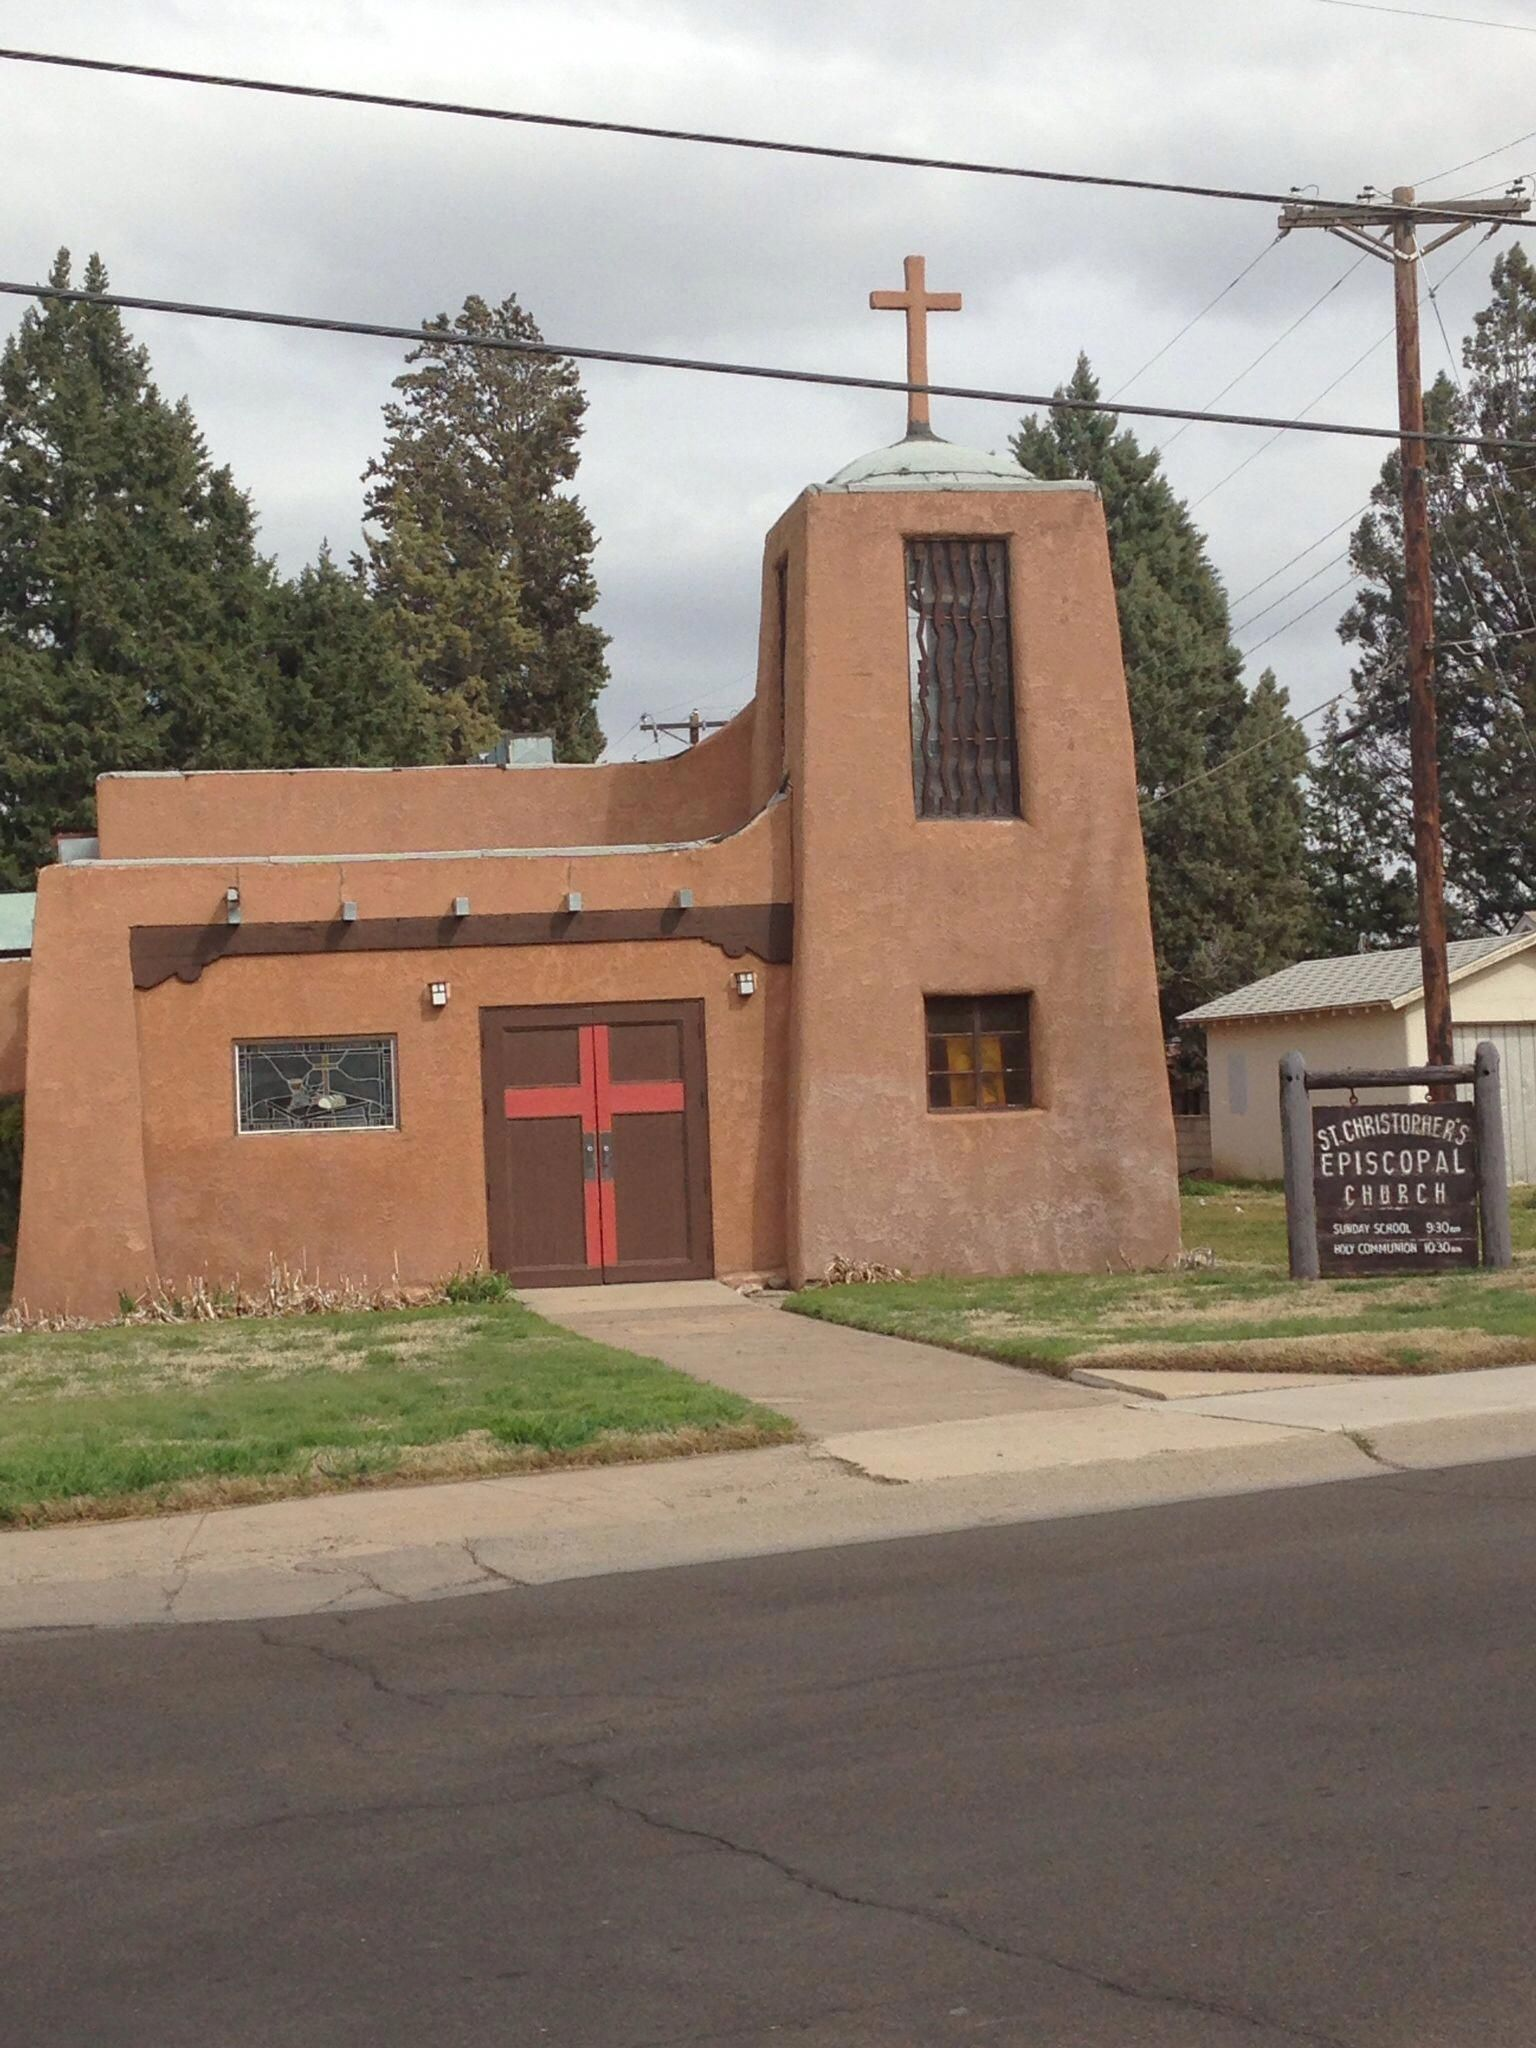 Hobbs new mexico i used to walkridedrive by this church